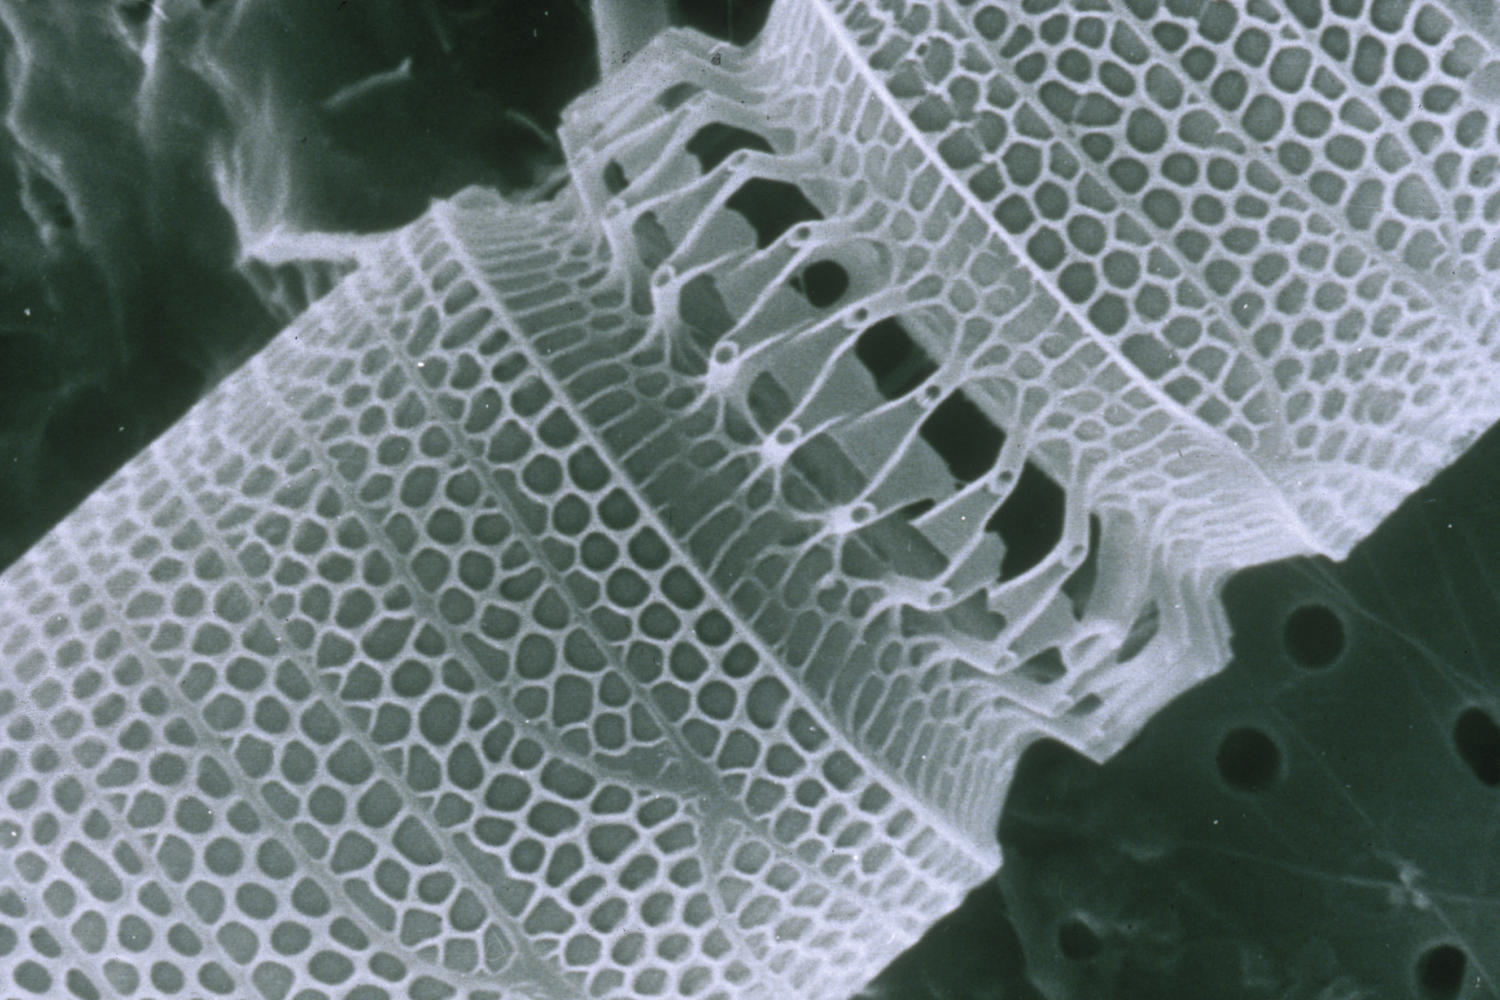 A+nanotube+used+in+medical+treatments